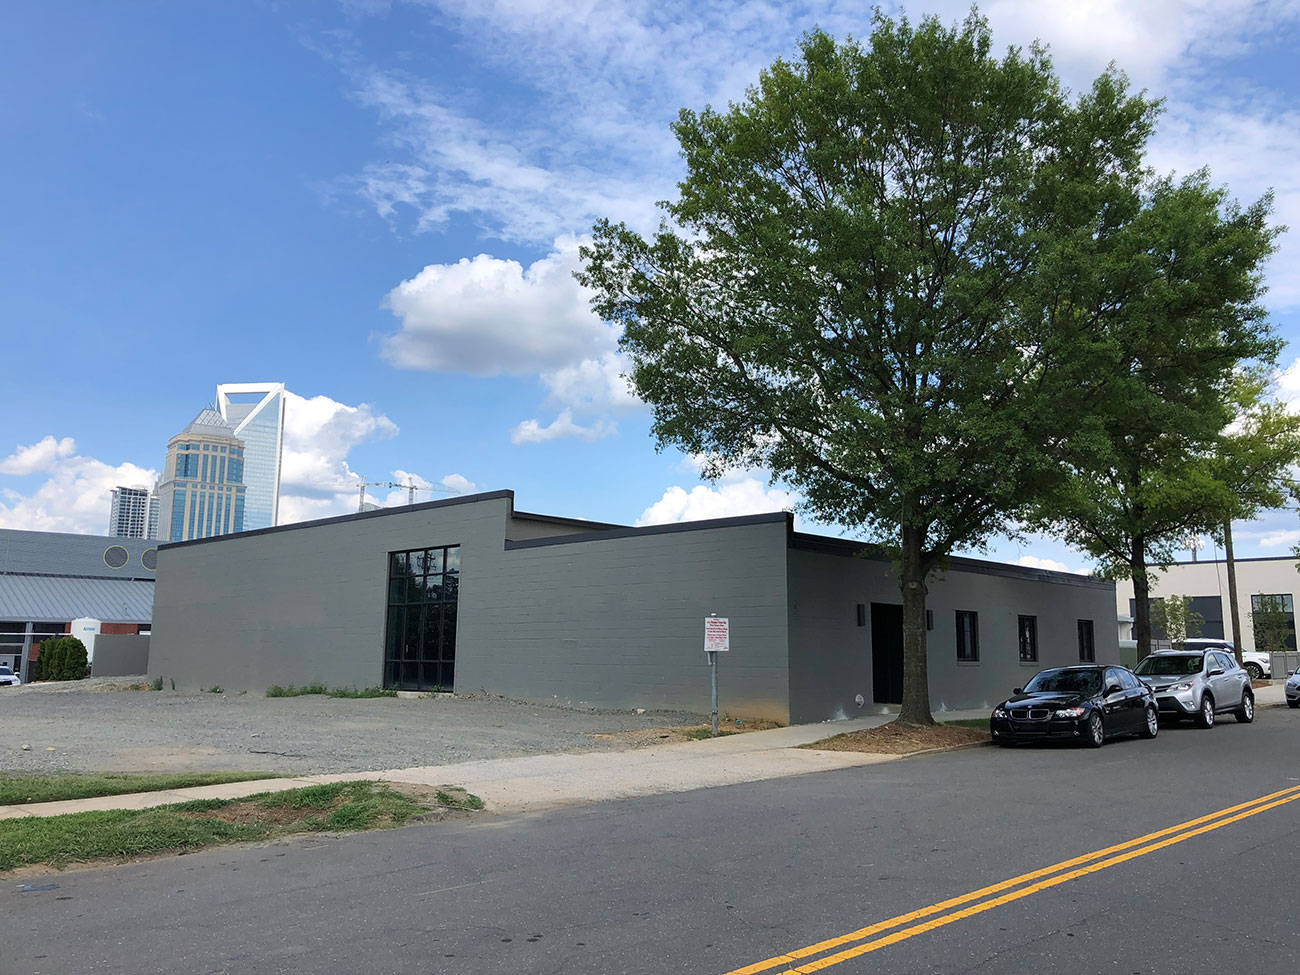 14,000+ square foot bar and social gaming parlor coming to South End's Gold District this fall